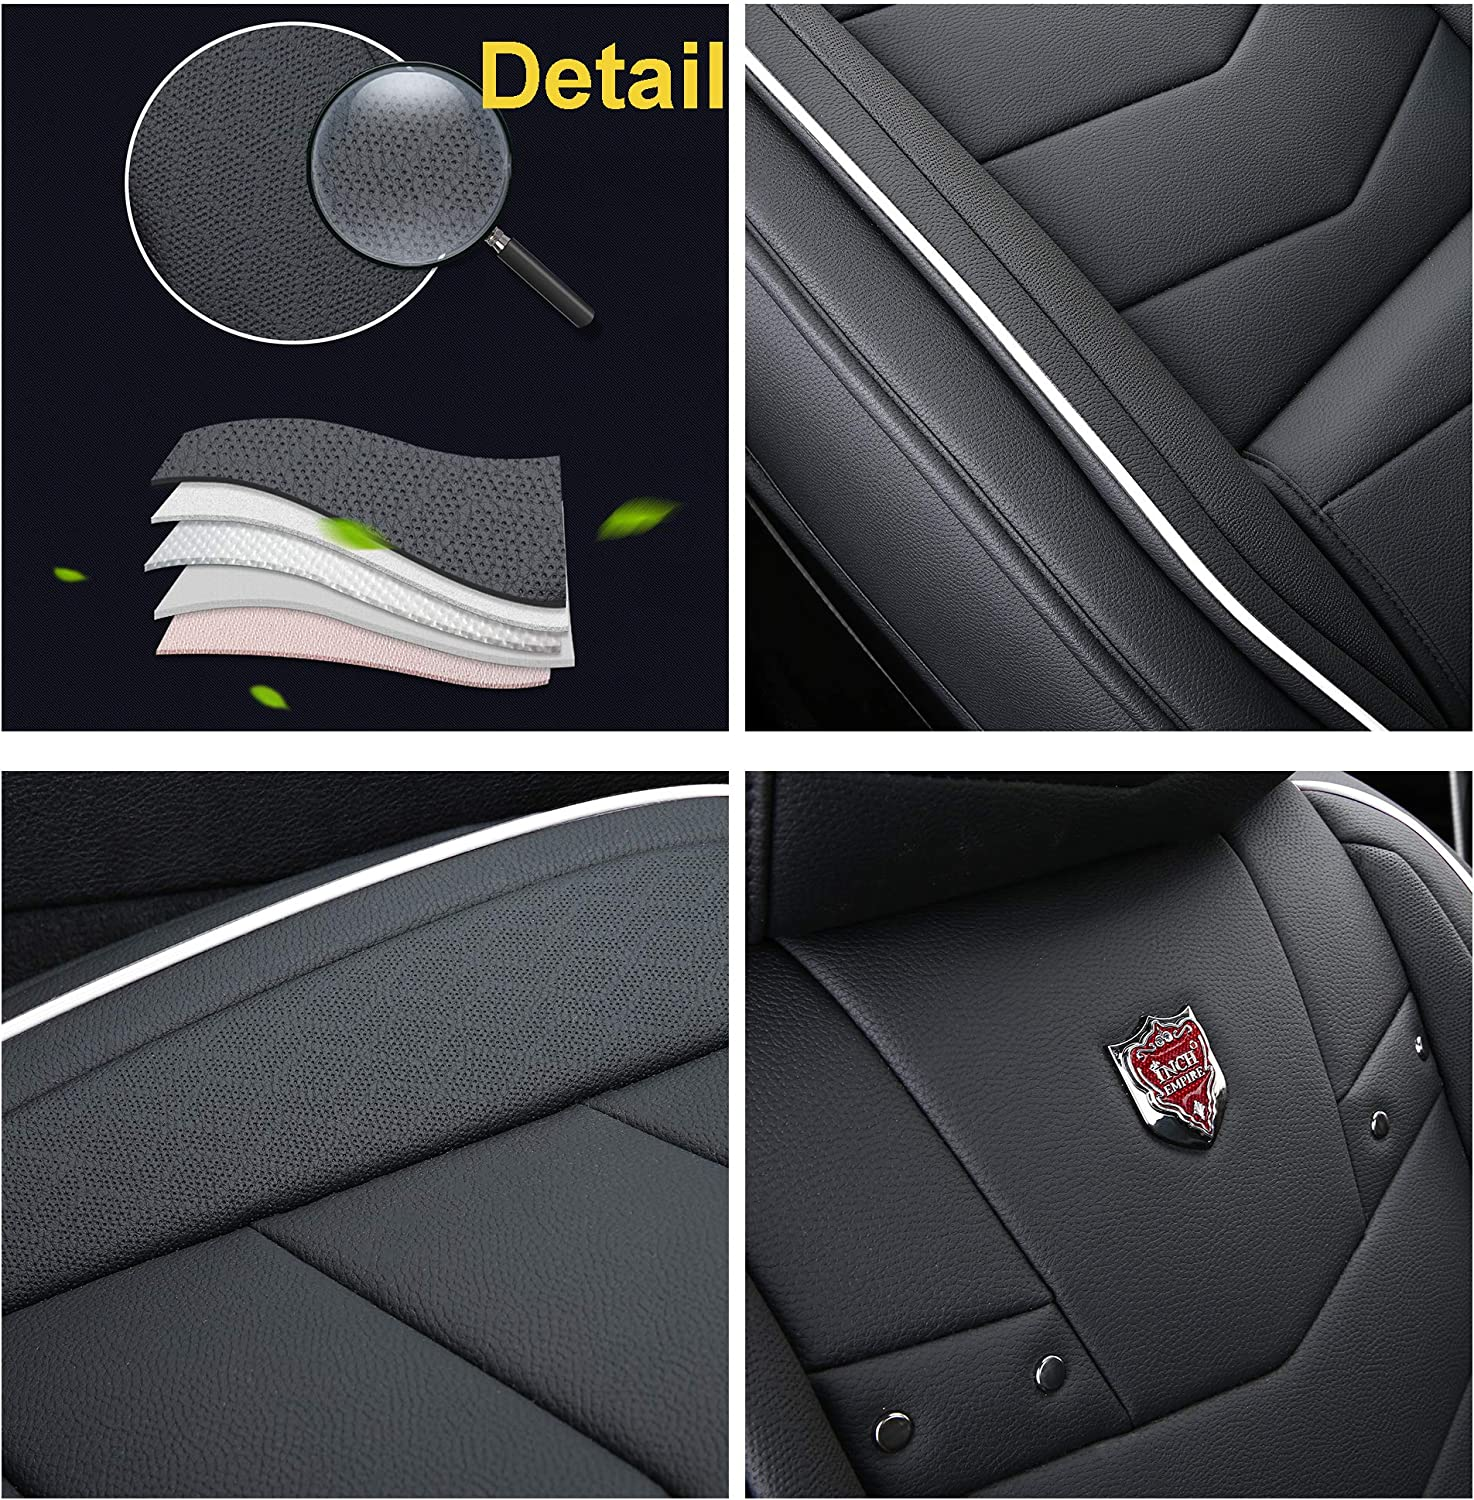 Black with Red Trim Full Set INCH EMPIRE Car Seat Cover-Water Proof Leatherette Cushion with Built-in Lumbar Support Front and Back Universal Fit for Sedan SUV Truck Hatchback Durable Use